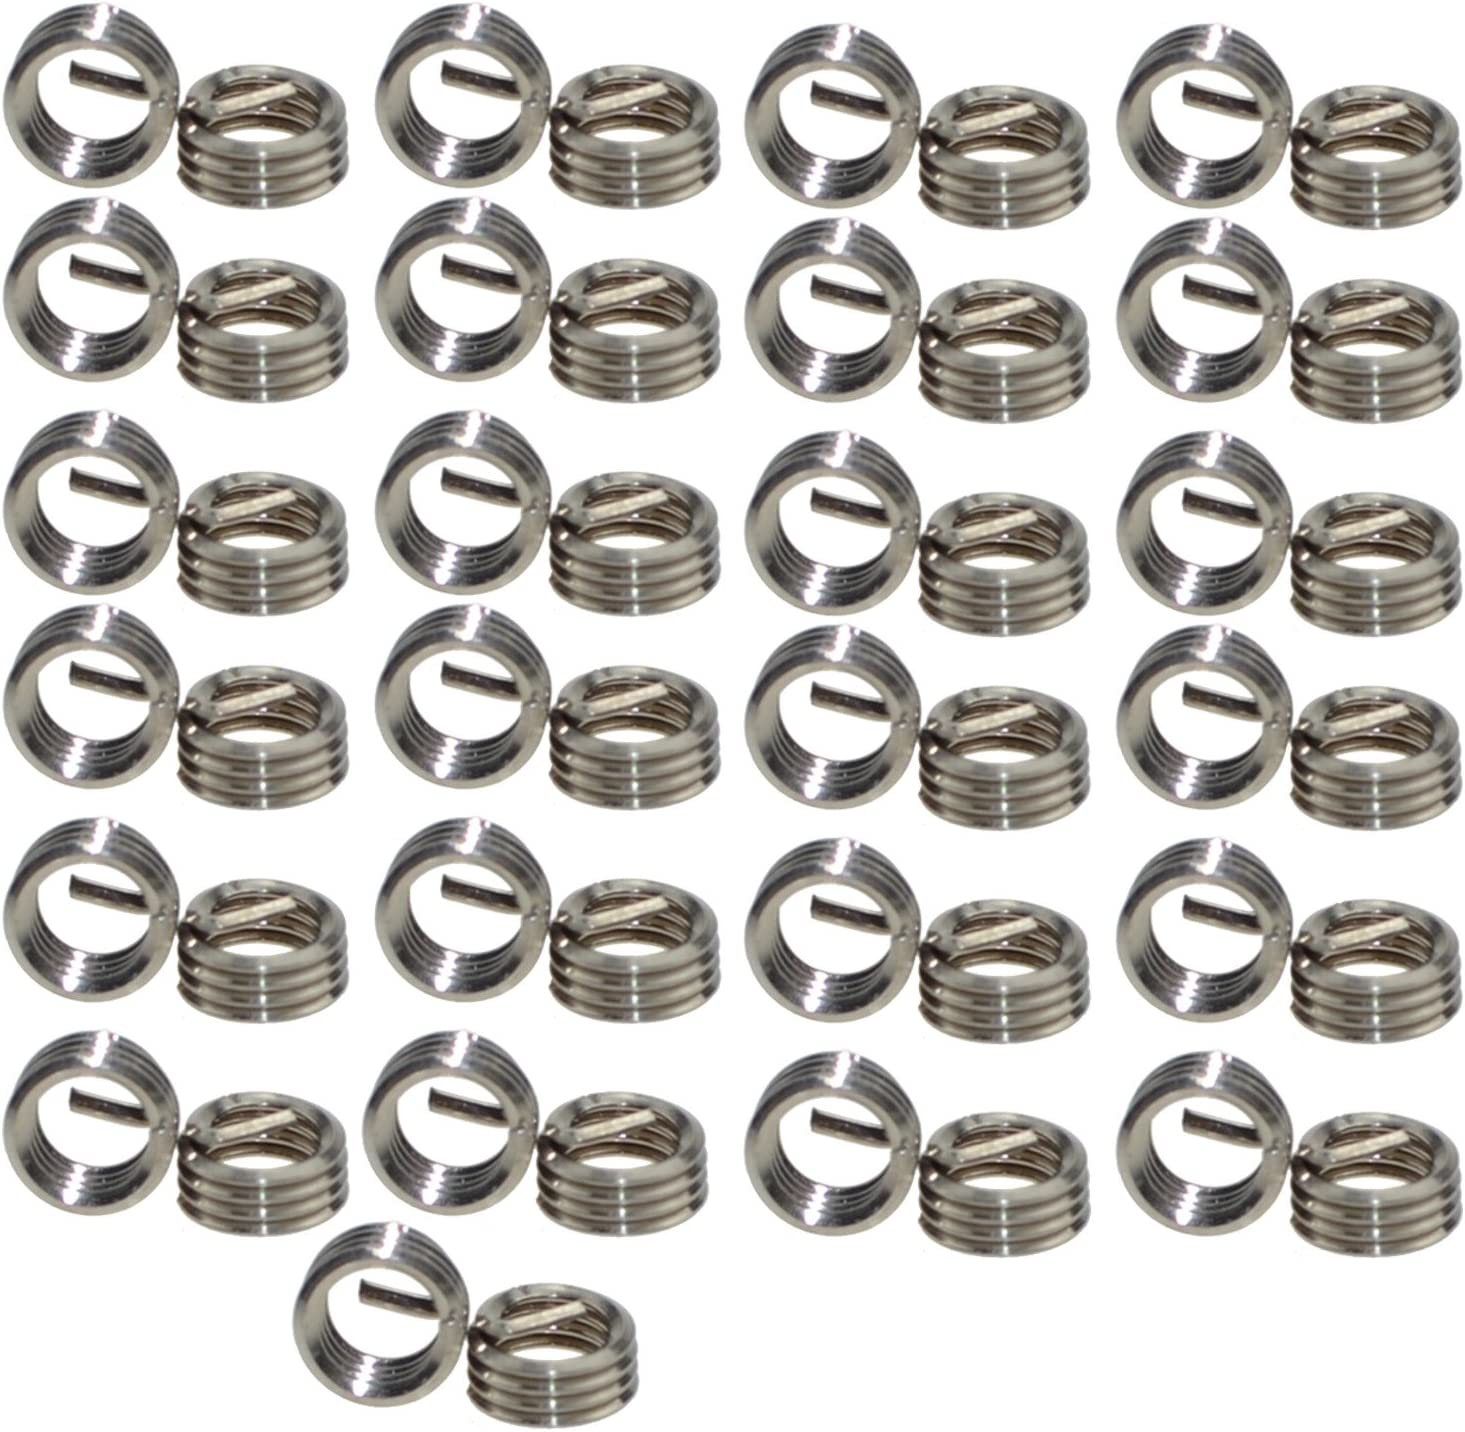 XunLiu 304 Stainless Steel Wire Max Max 79% OFF 77% OFF Stripped HeliCoil Insert Thread